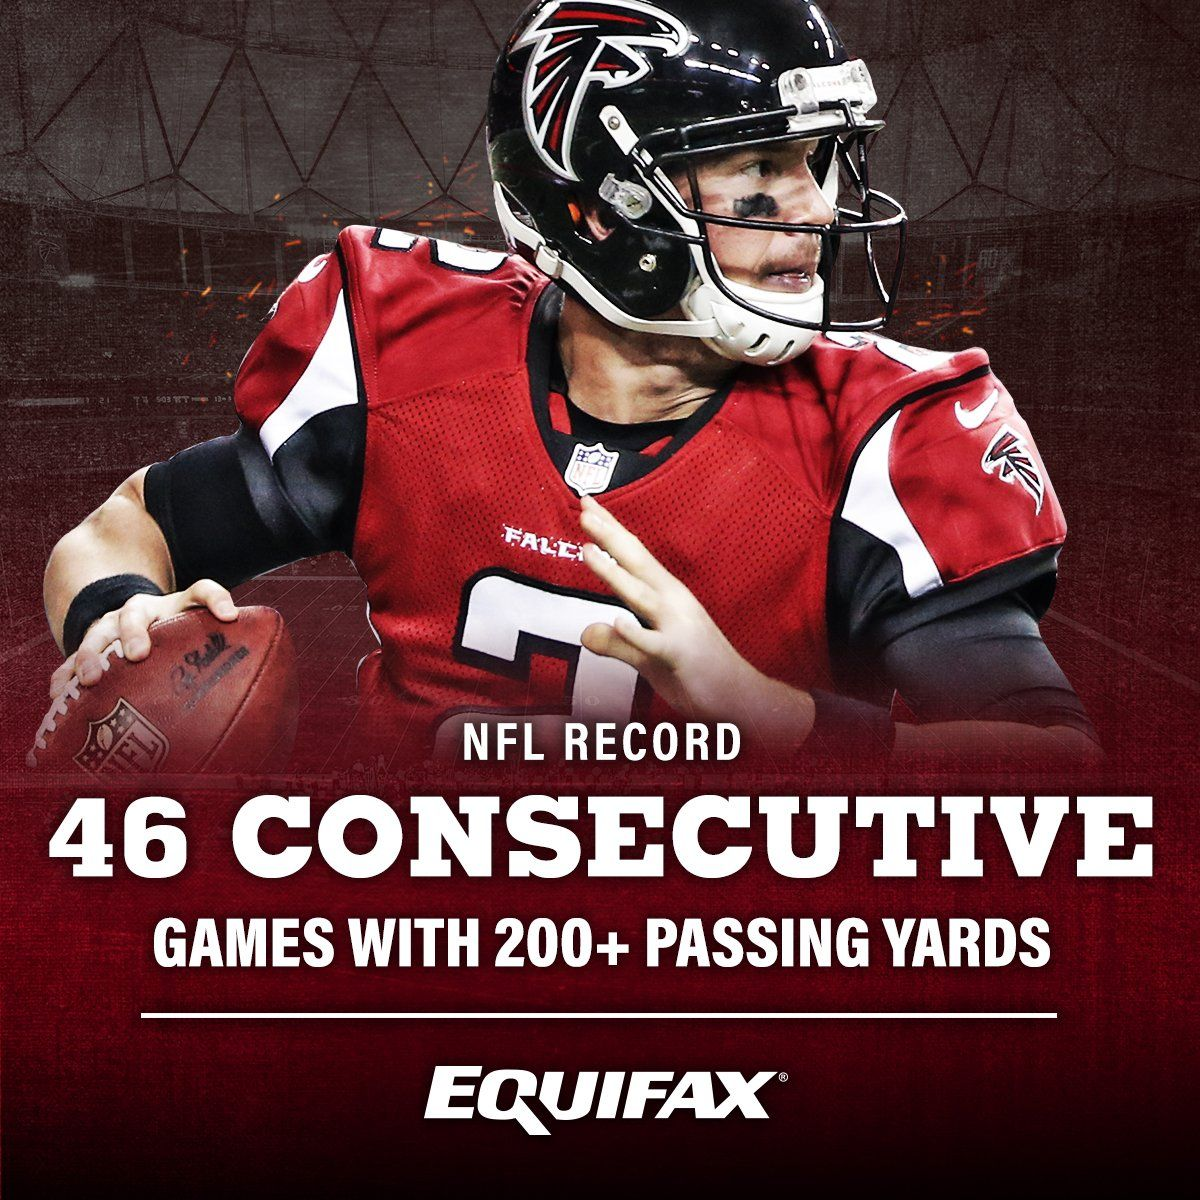 Matt Ryan Has Just Broken An Nfl Record By Throwing For 200 Passing Yards In 46 Consecutive Games With Images Atlanta Falcons Logo Atlanta Falcons Pictures Atlanta Falcons Matt Ryan